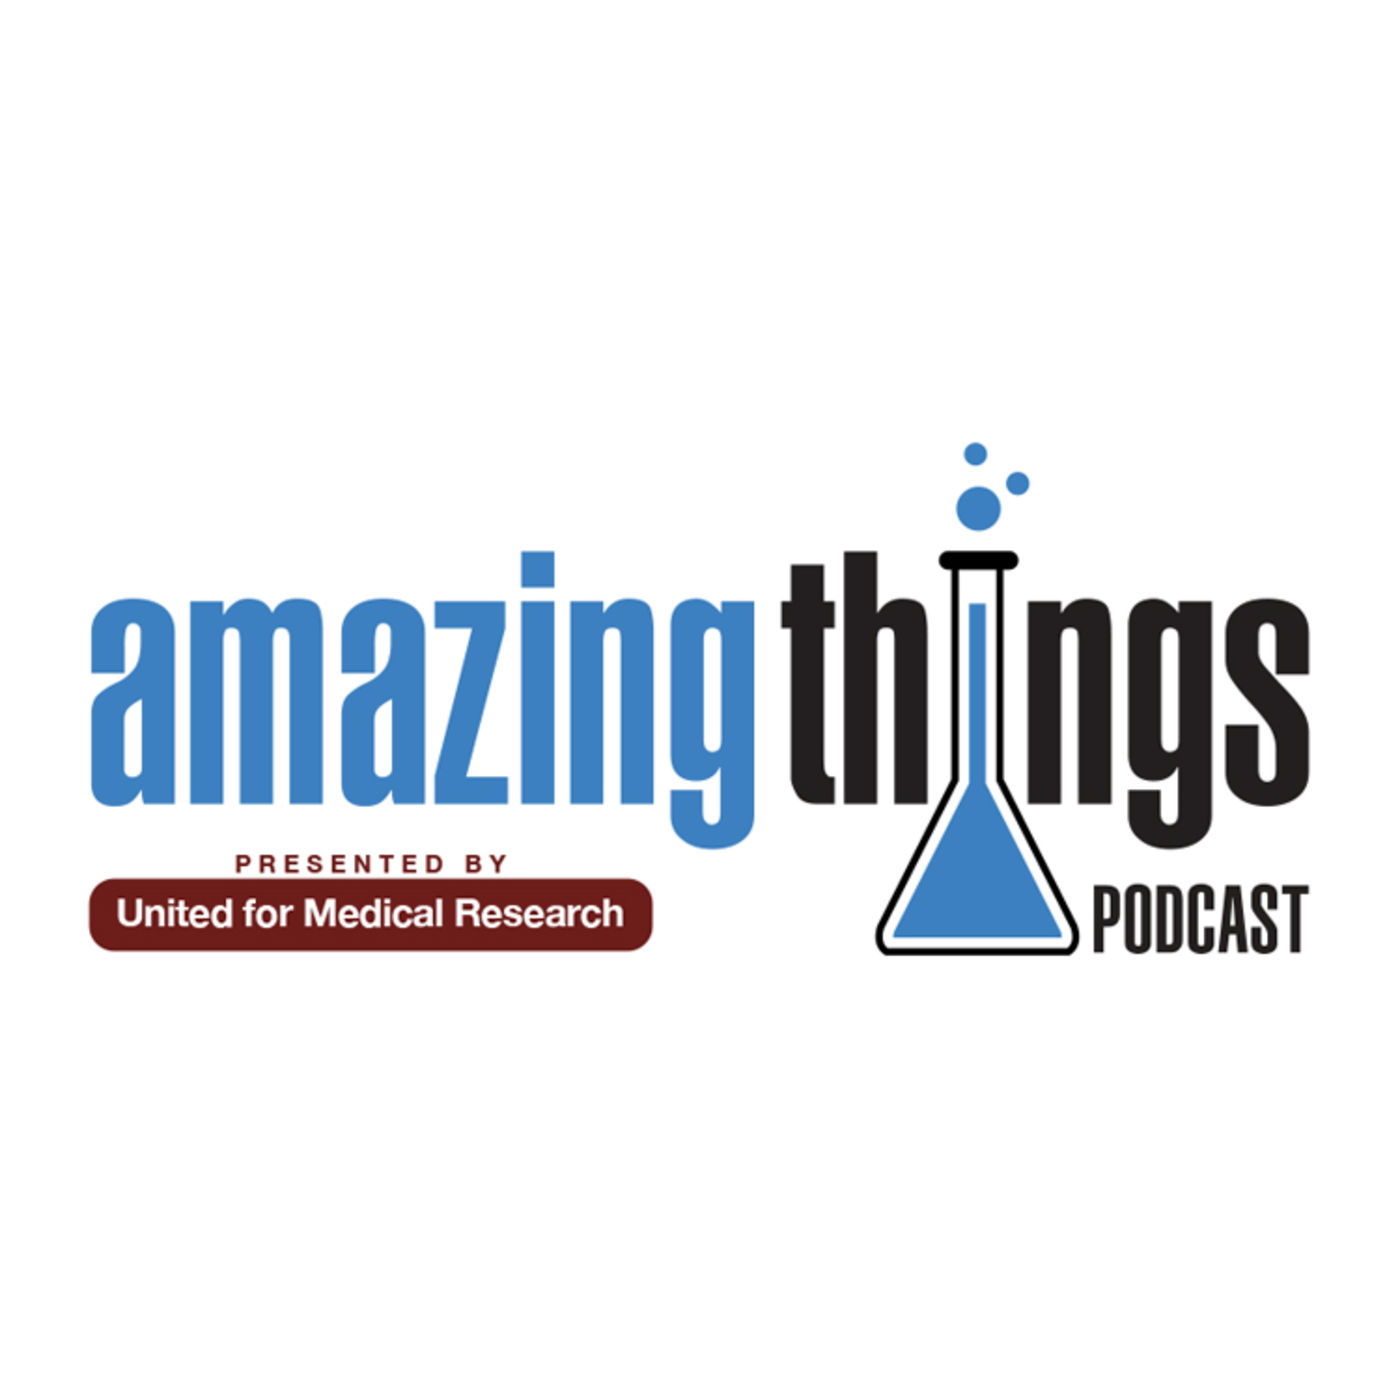 Duchenne Muscular Dystrophy Nih Amazing Things Podcast Listen Free On Castbox